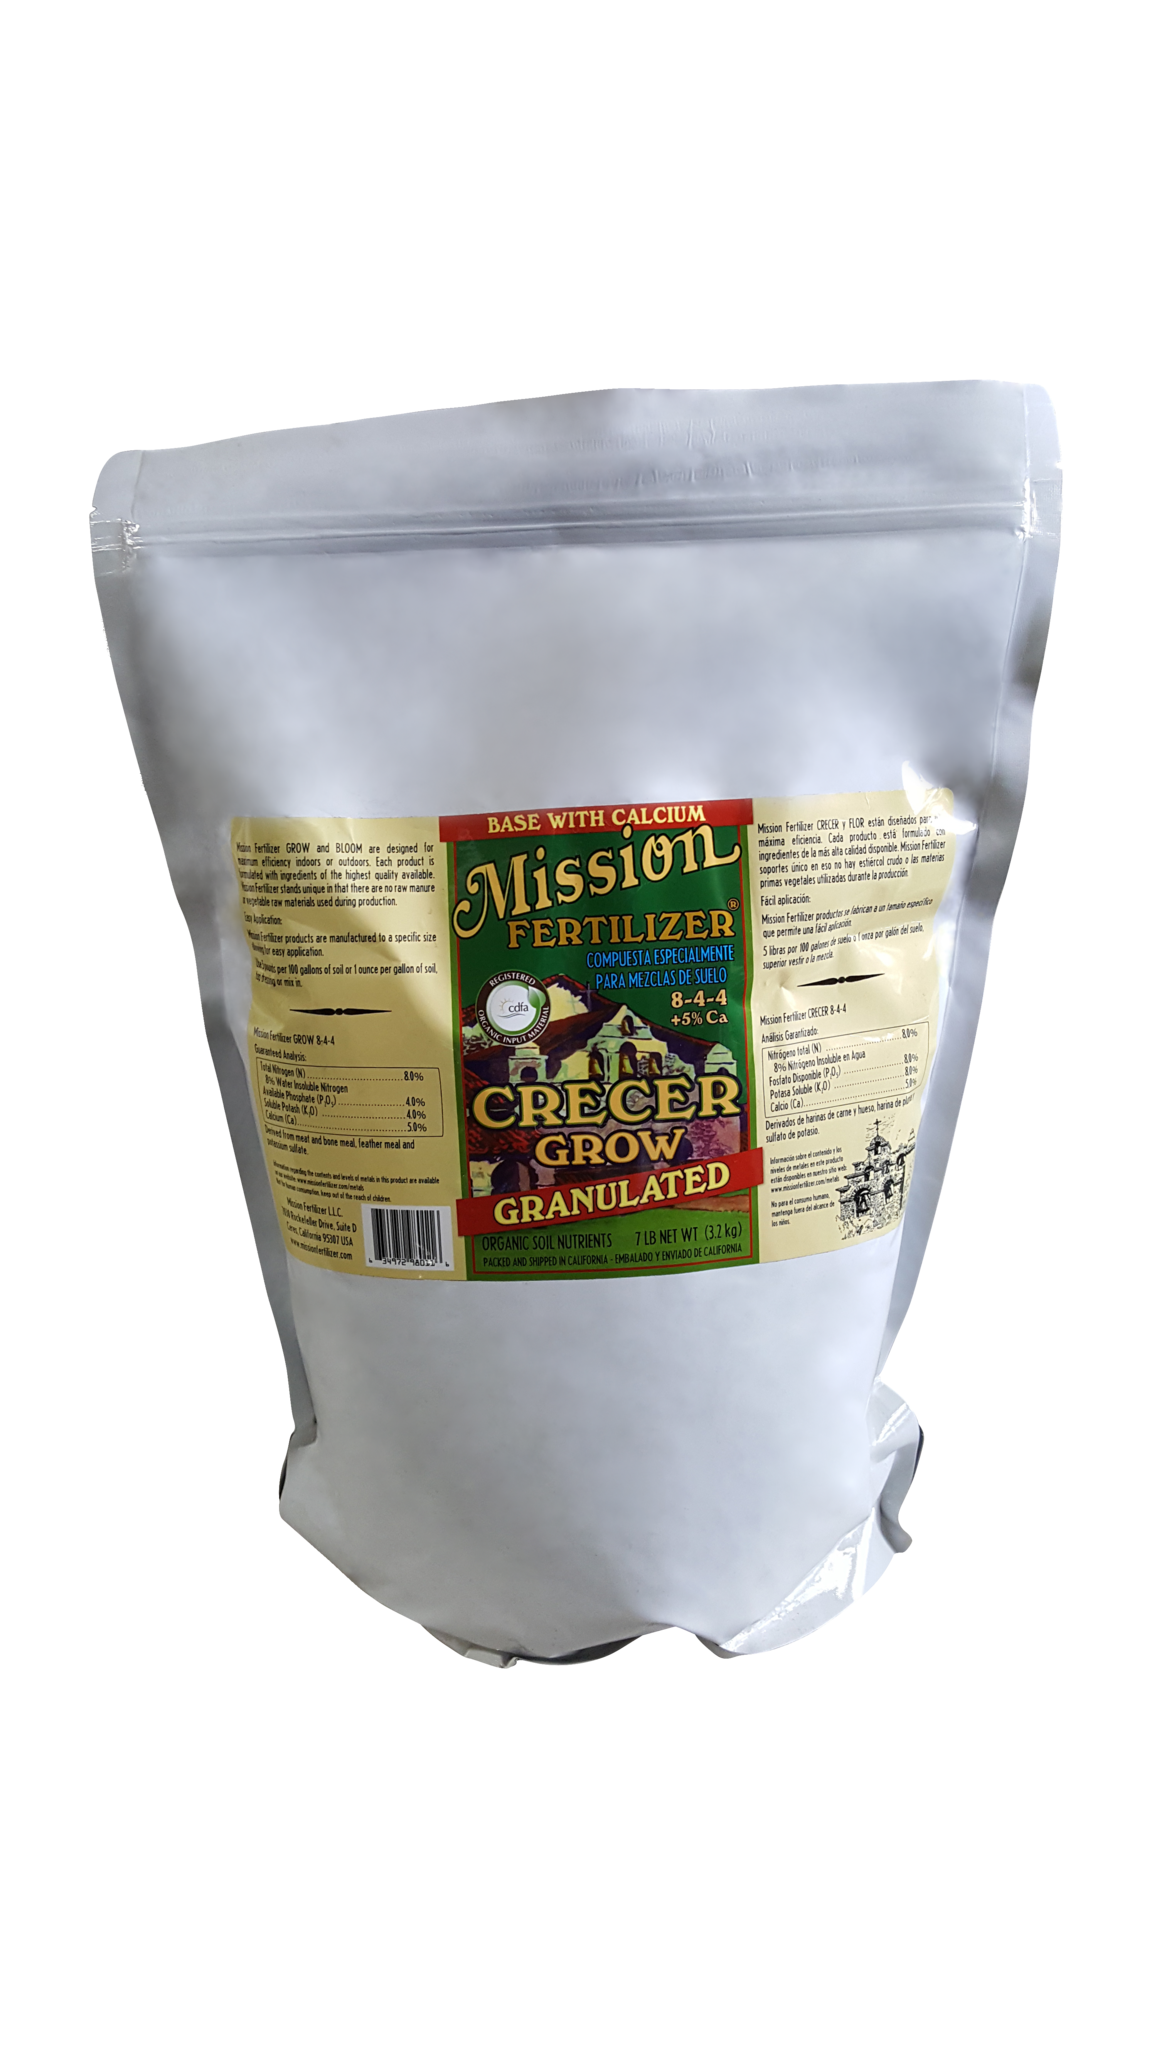 Mission GROW granular with Calcium (7 lb)